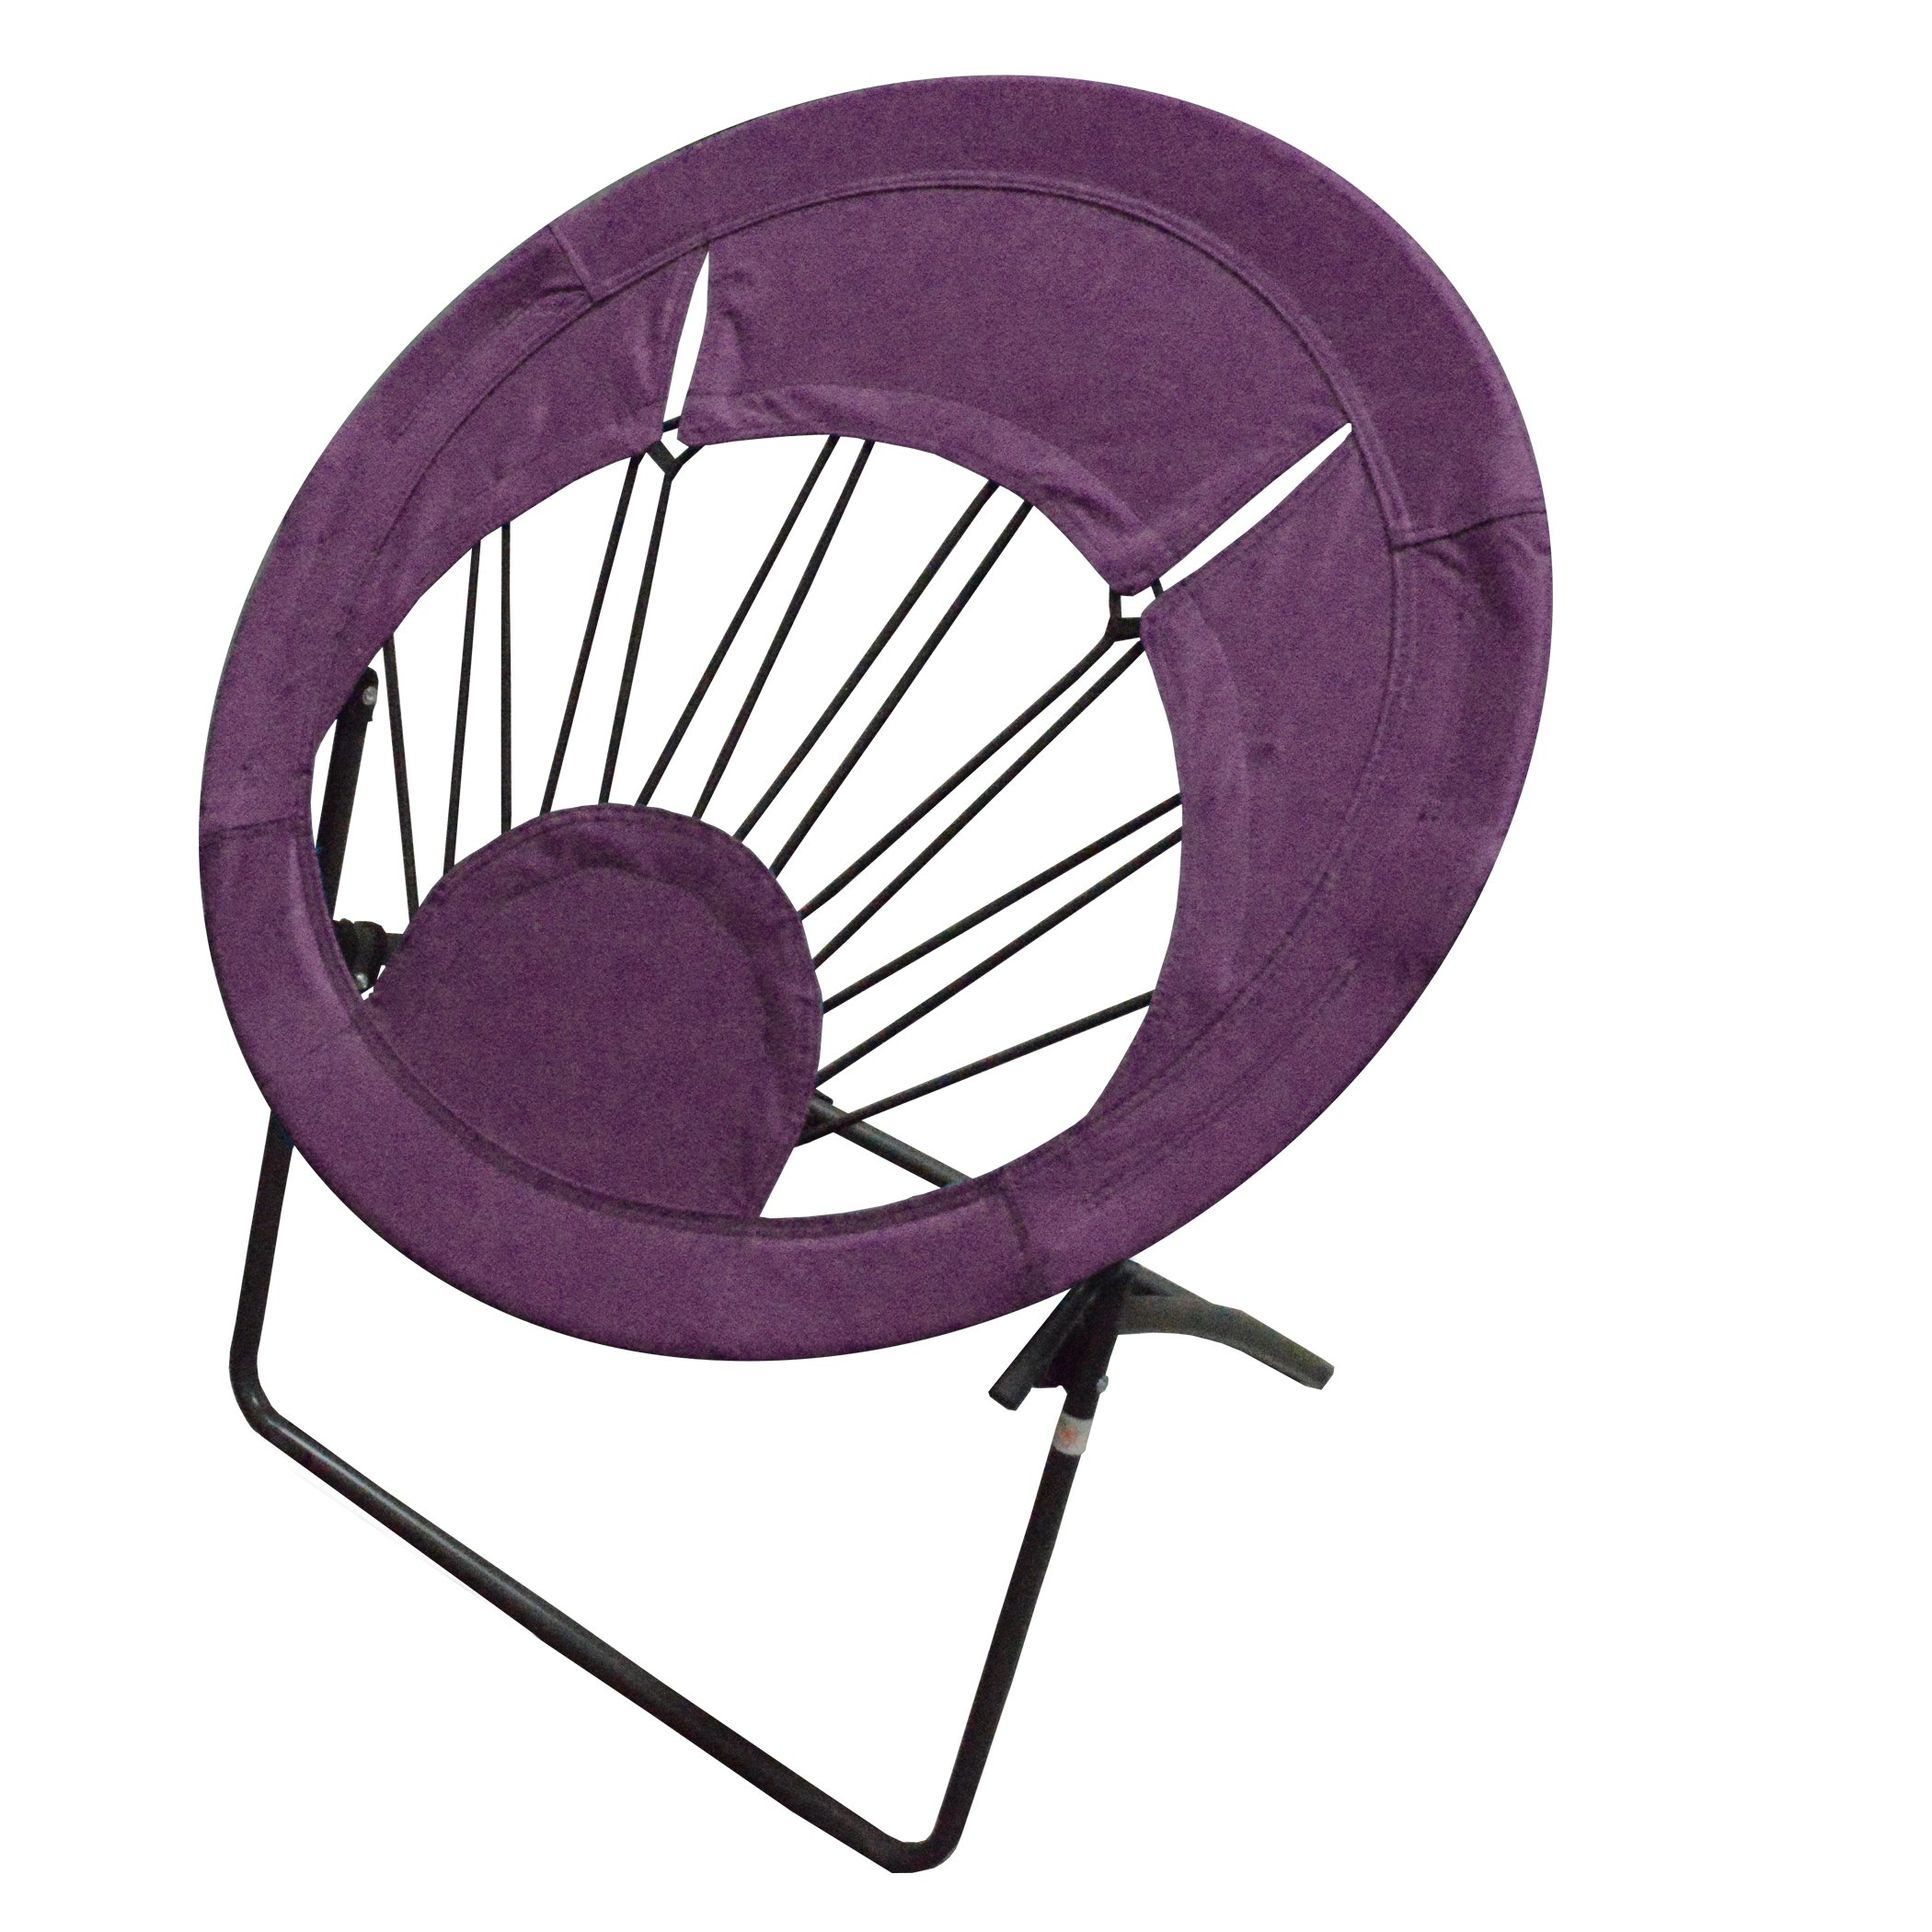 brookstone bungee chair wedding cover hire dorset cheap office find deals on line at impact canopy round portable folding purple